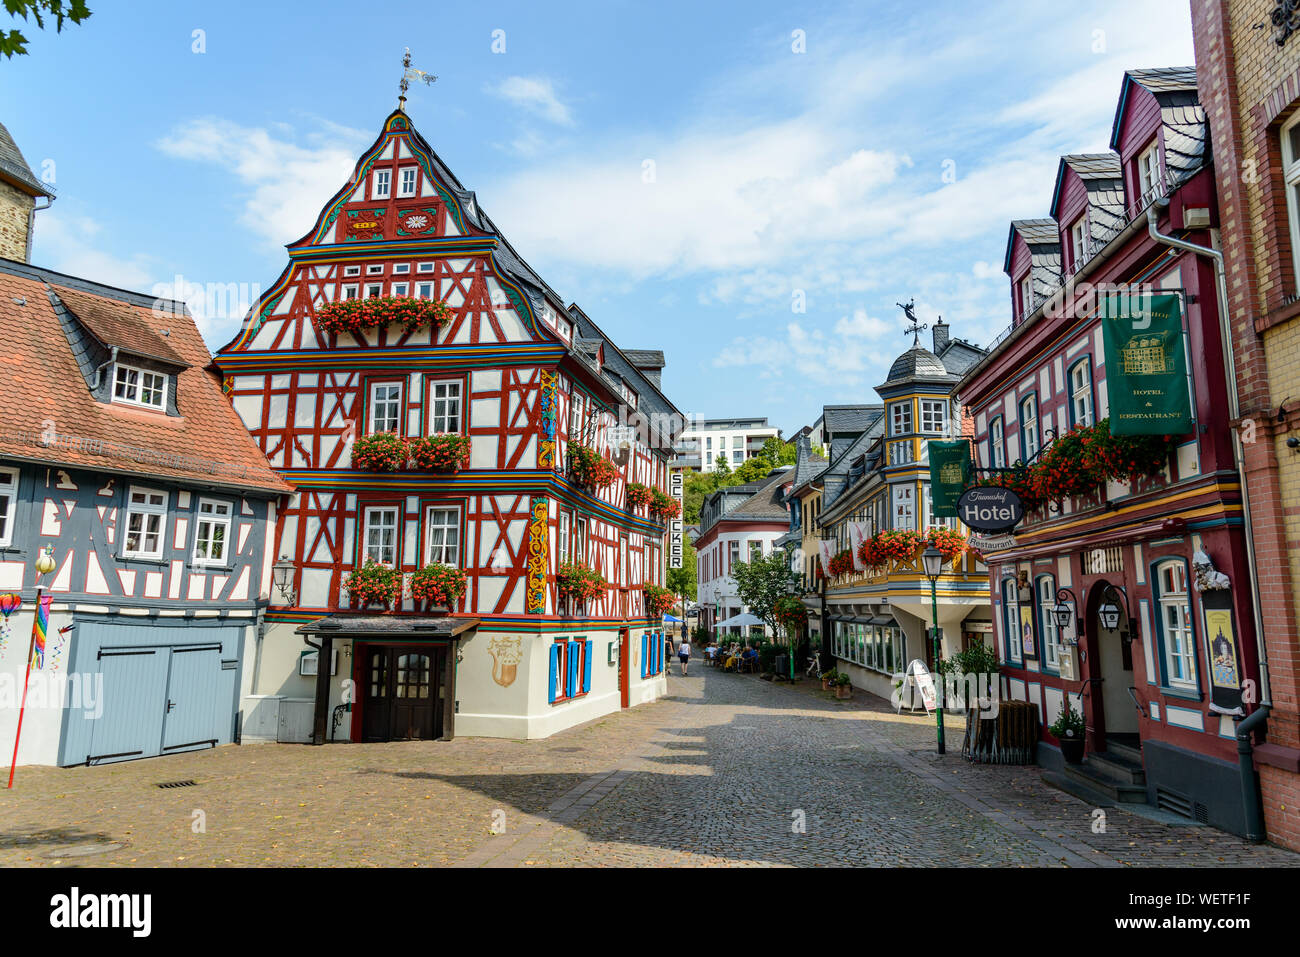 29 August 2019: Colorful Half-timbered (Fachwerkhaus) house, houses, Hotel, restaurant nearby marketplace in Idstein, Hessen (Hesse), Germany. Nearby Stock Photo